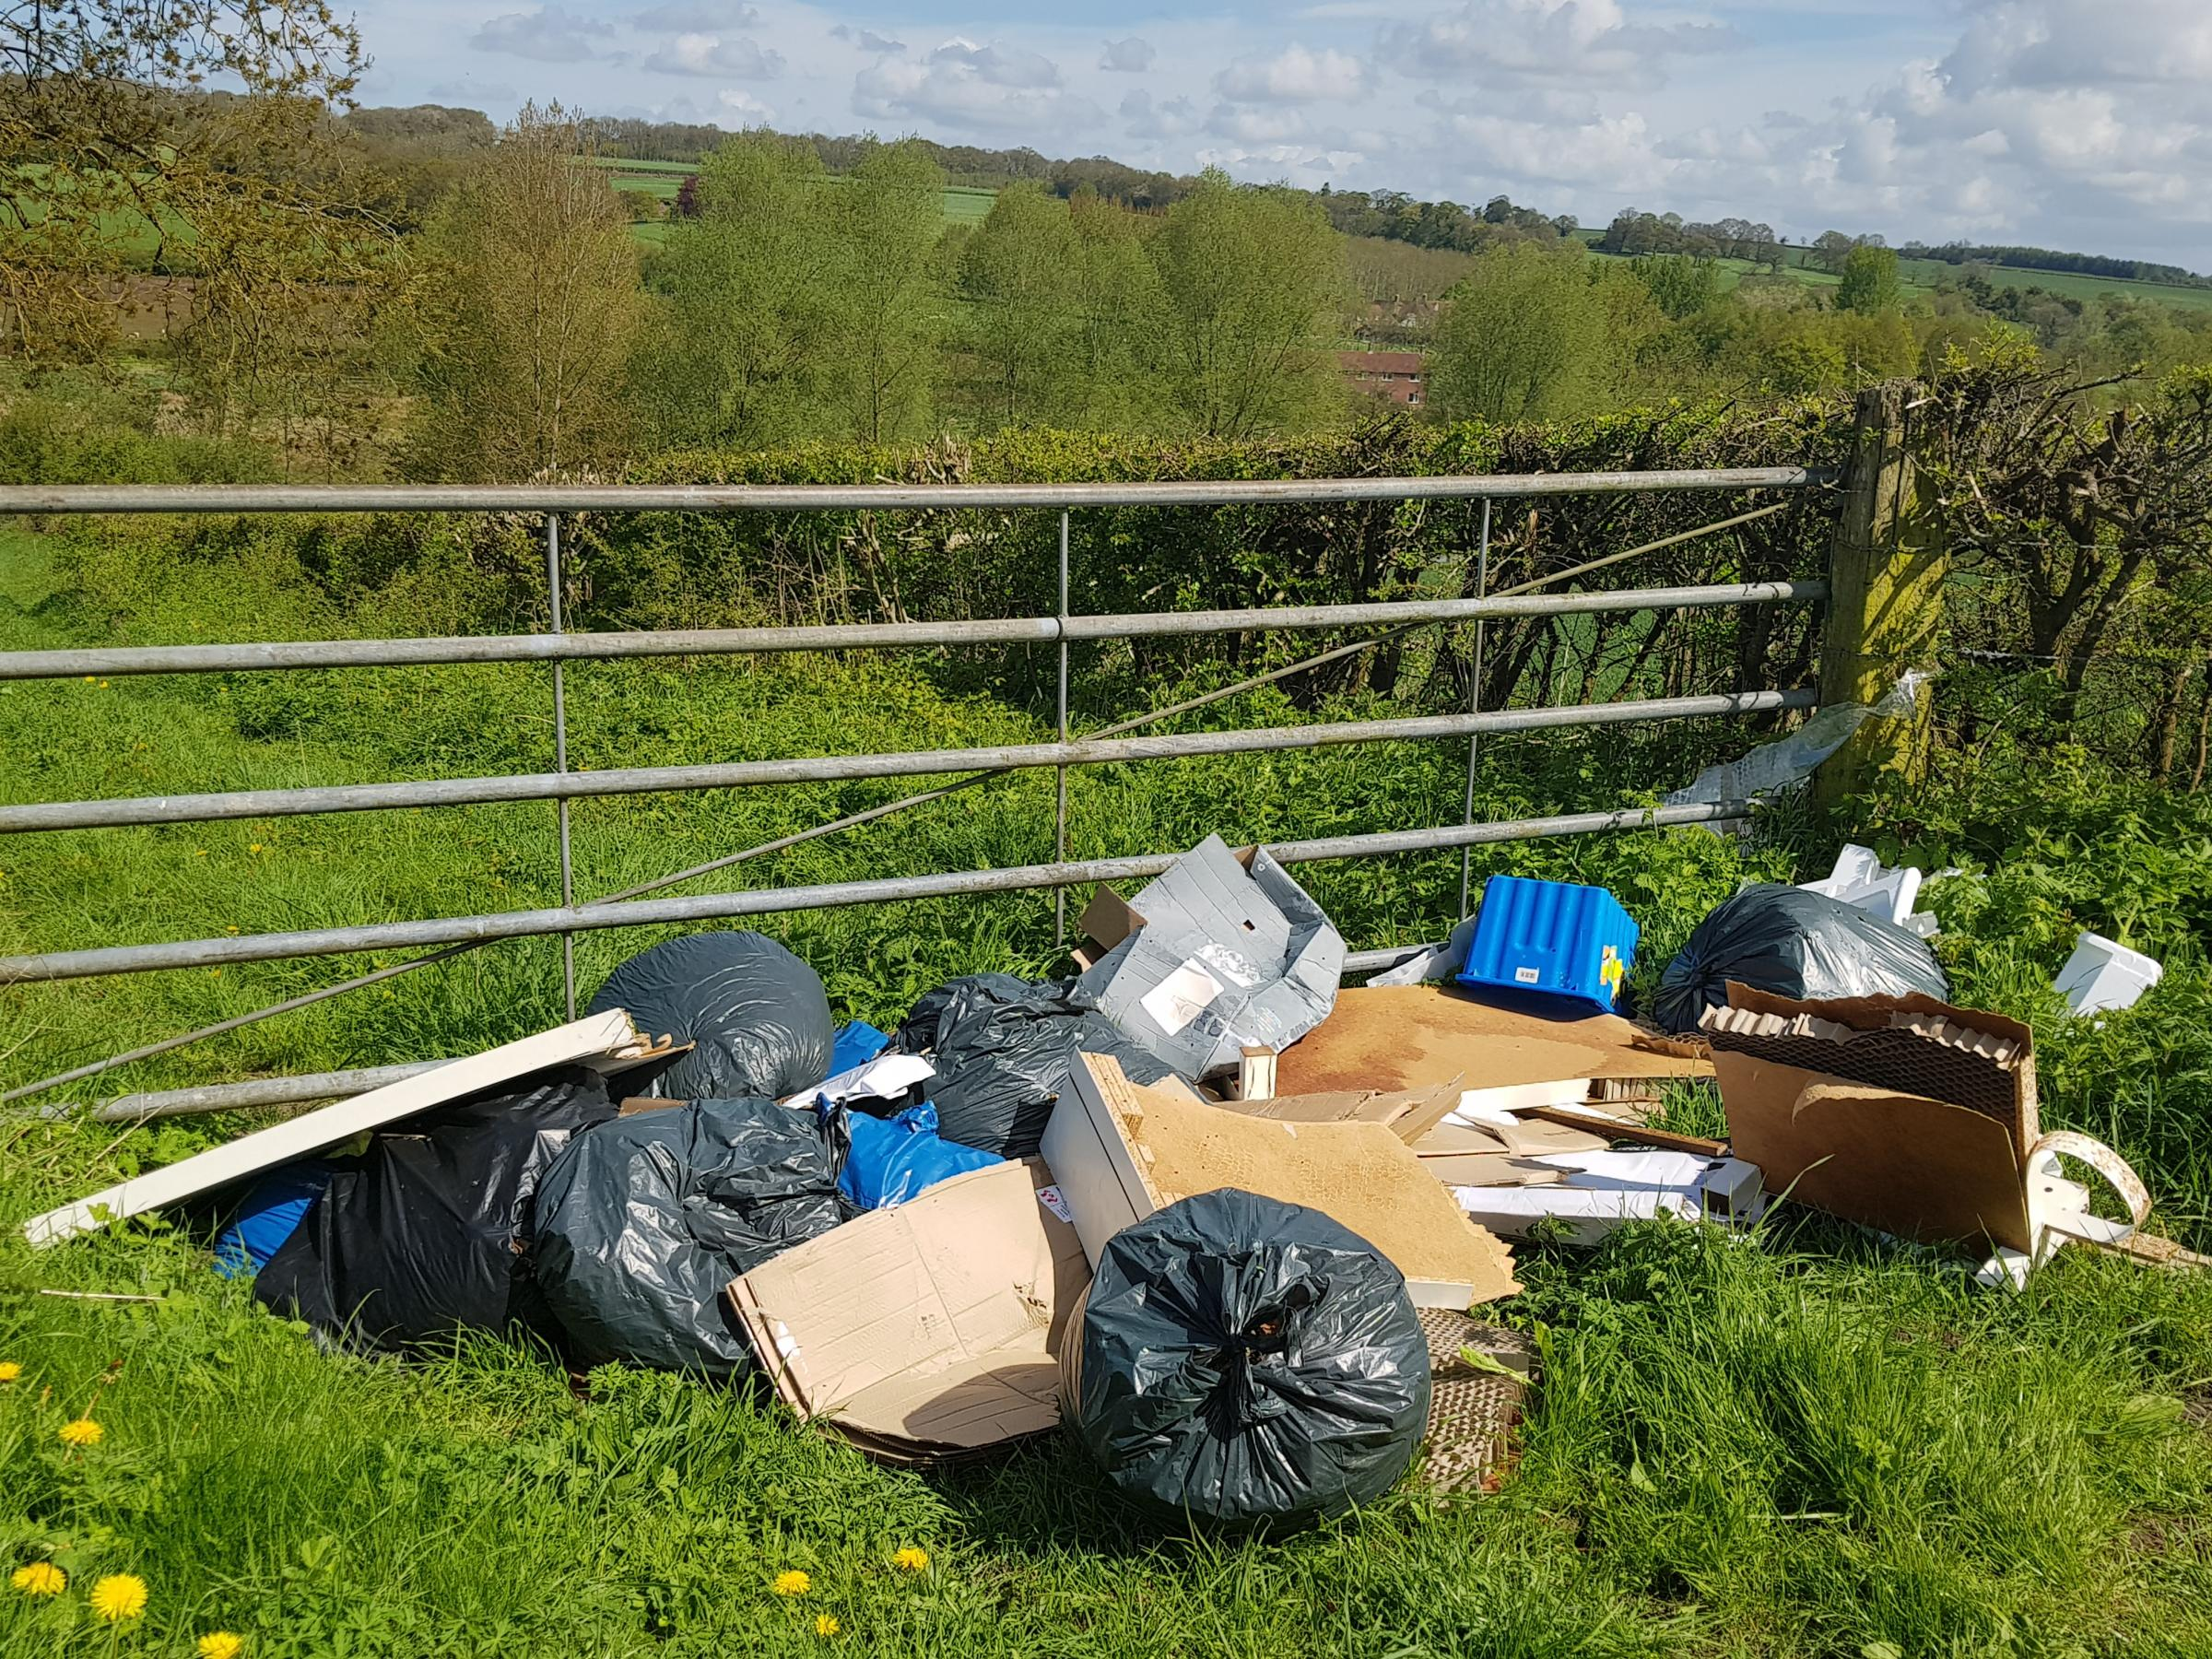 Men caught fly-tipping dealt hefty fine and could face jail if they dump waste again